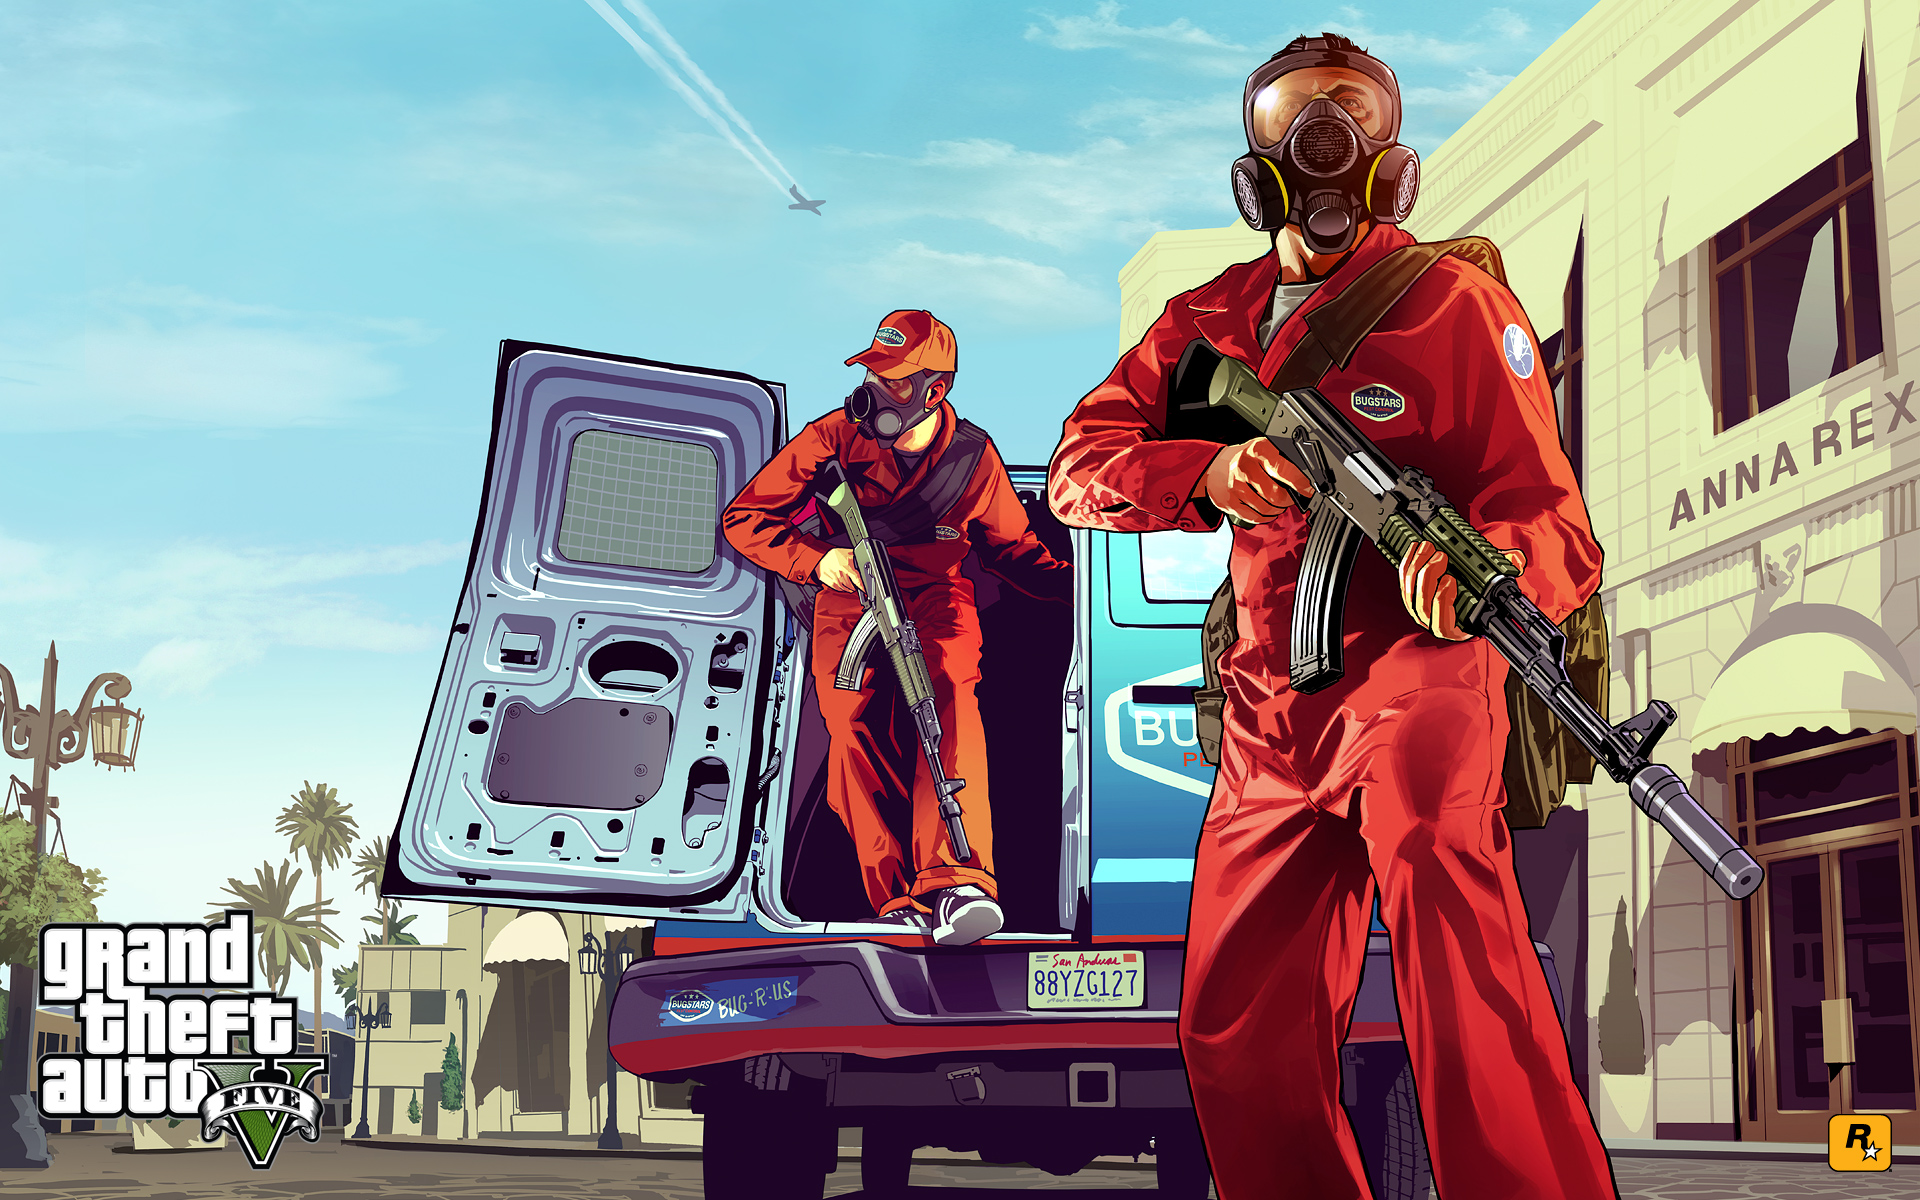 grand-theft-auto-5-gang-robbery-wallpaper.jpg (1920×1200)